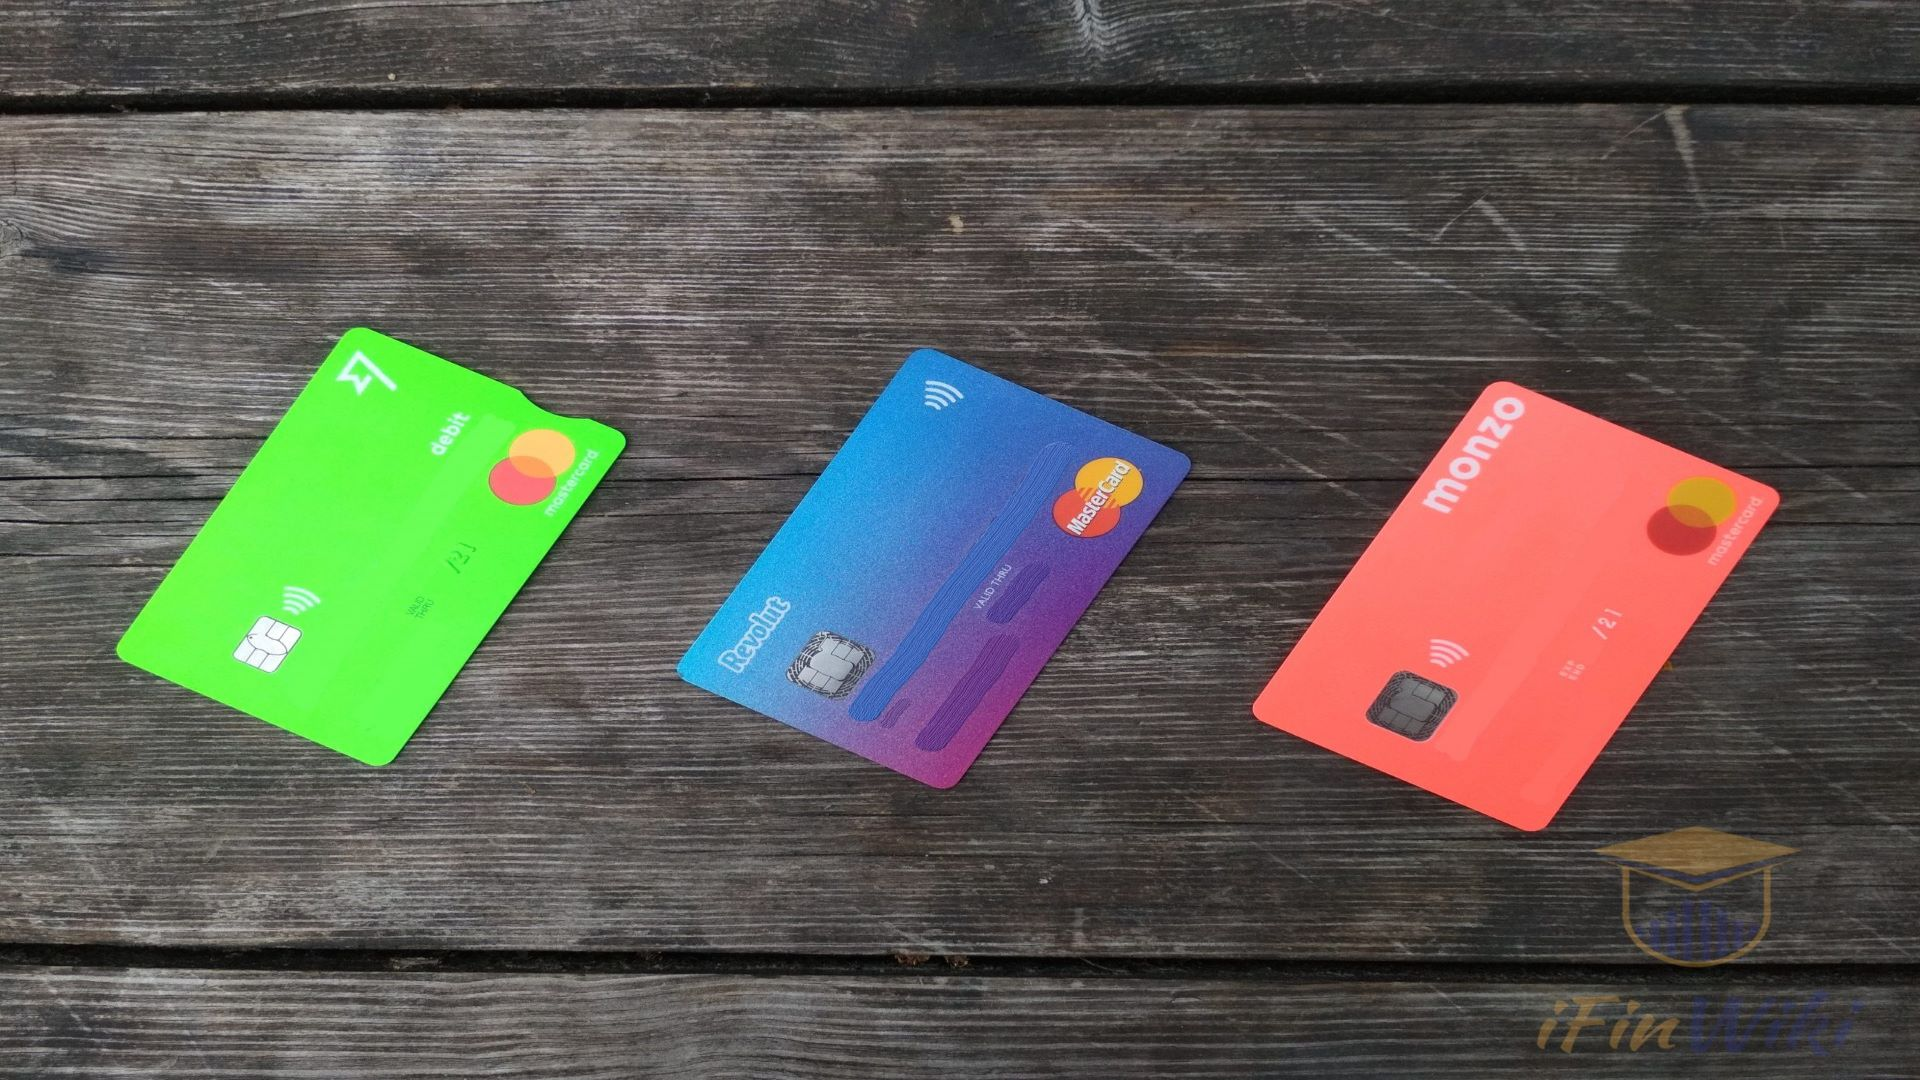 Revolut – Monzo – TransferWise – the new age of digital banks